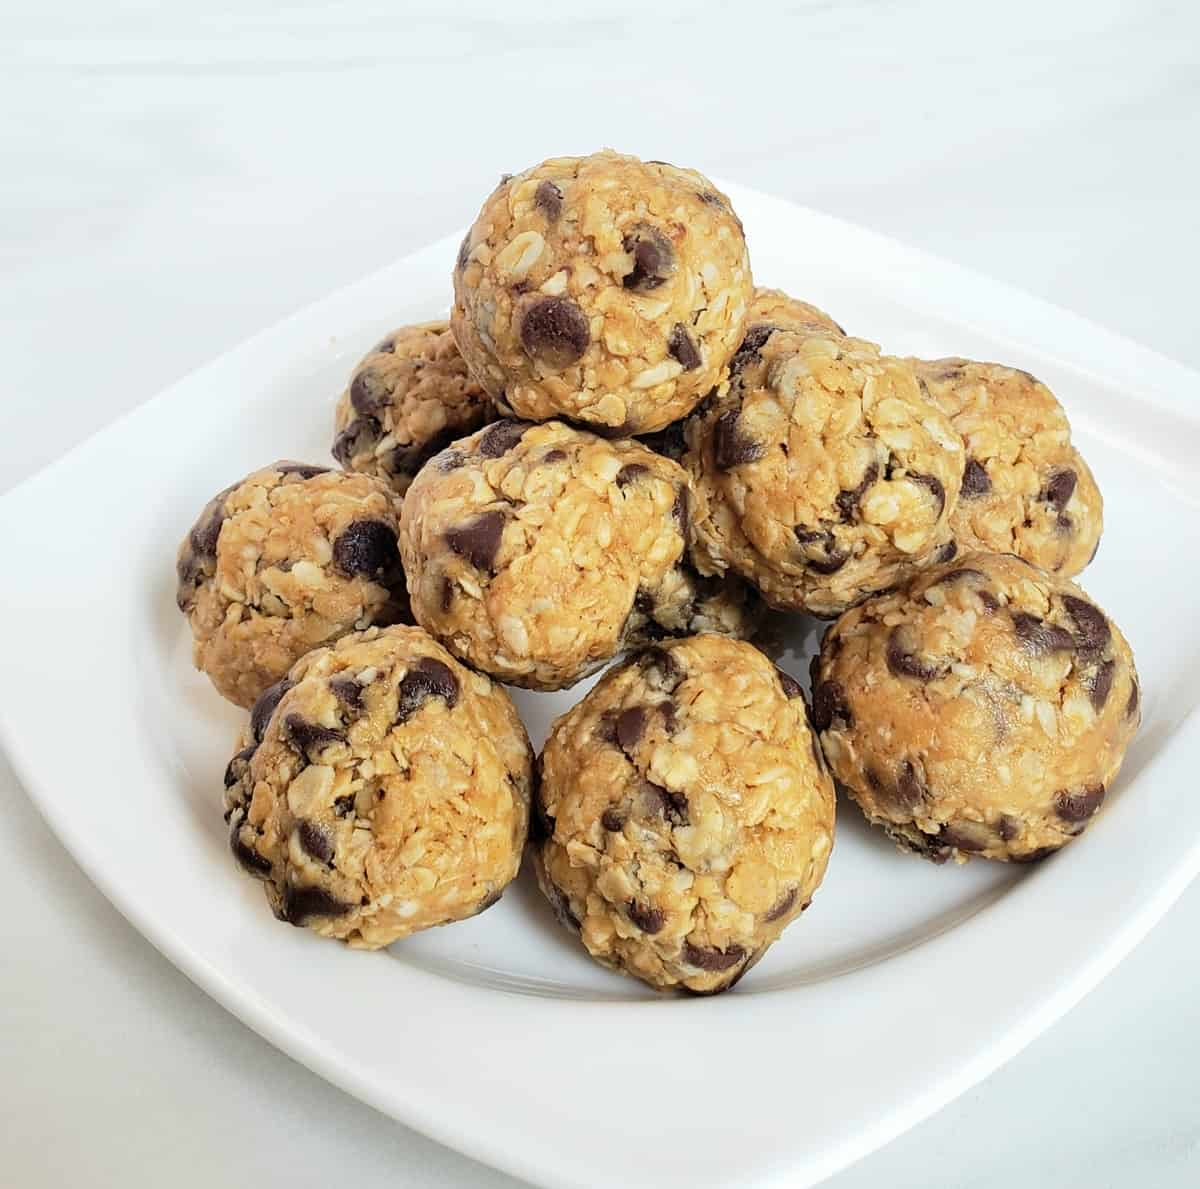 pyramid stack of peanut butter energy bites with chocolate chips on a white plate